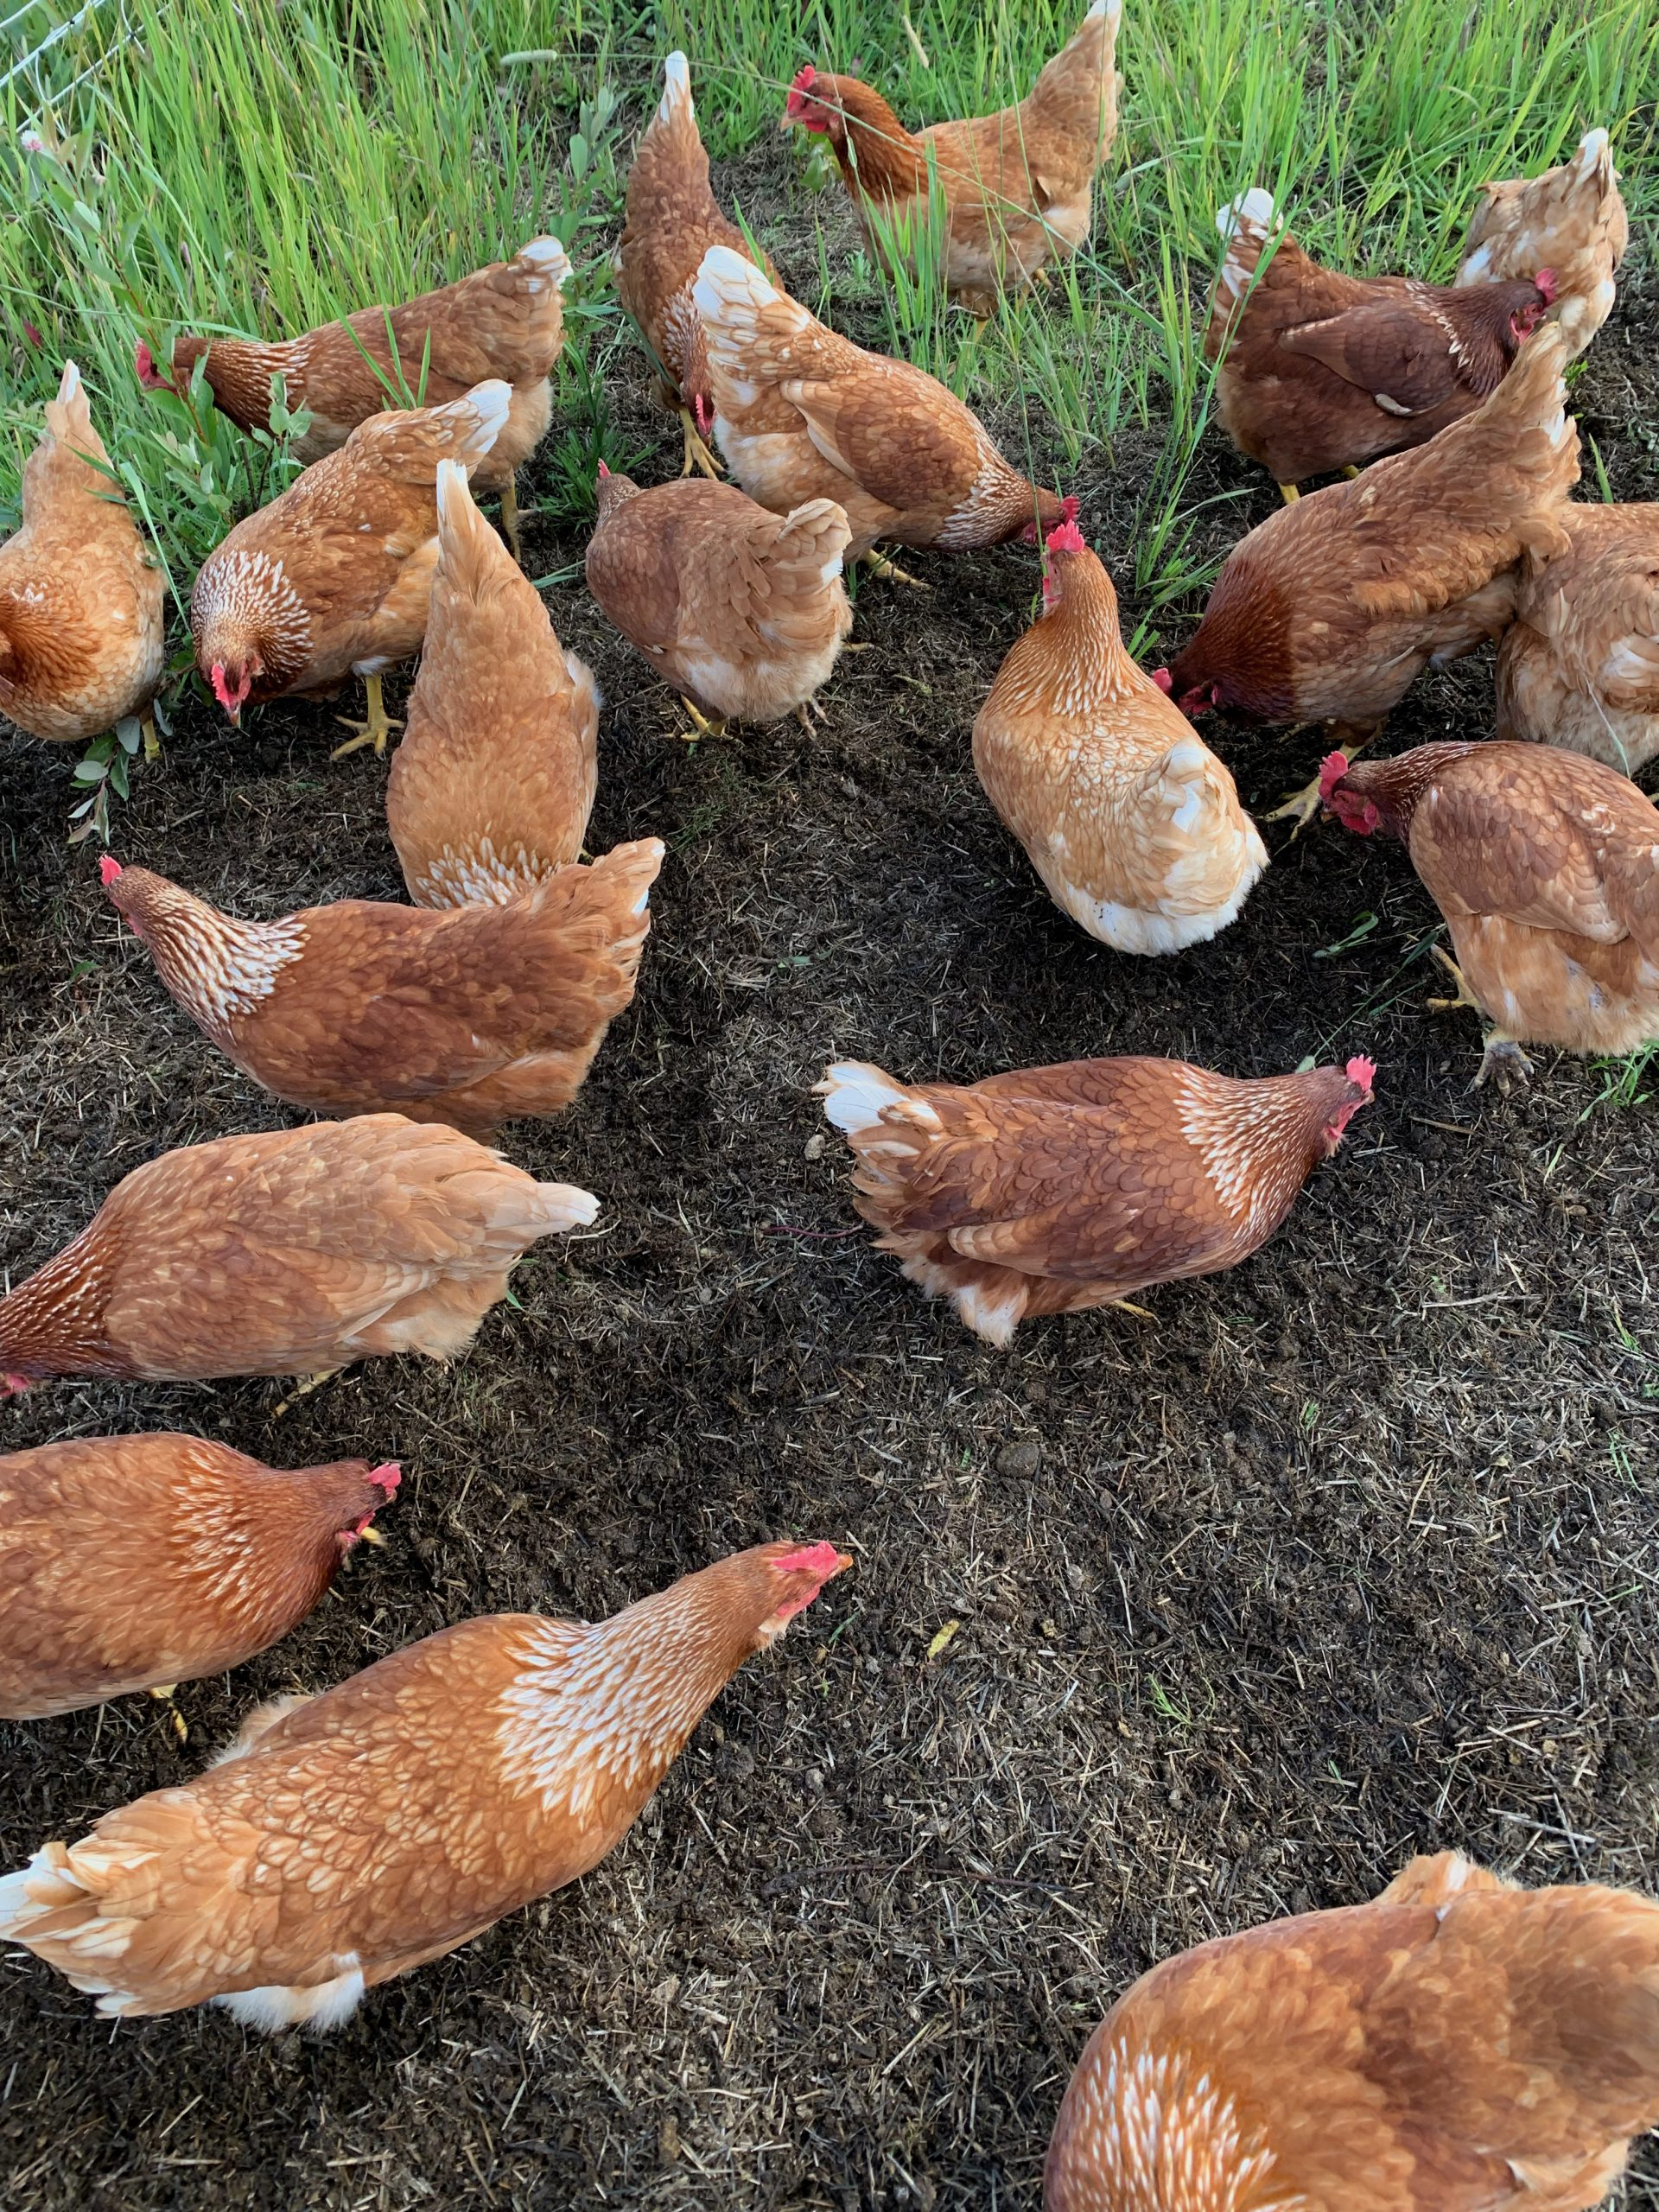 Pastured chickens scratching through a compost pile